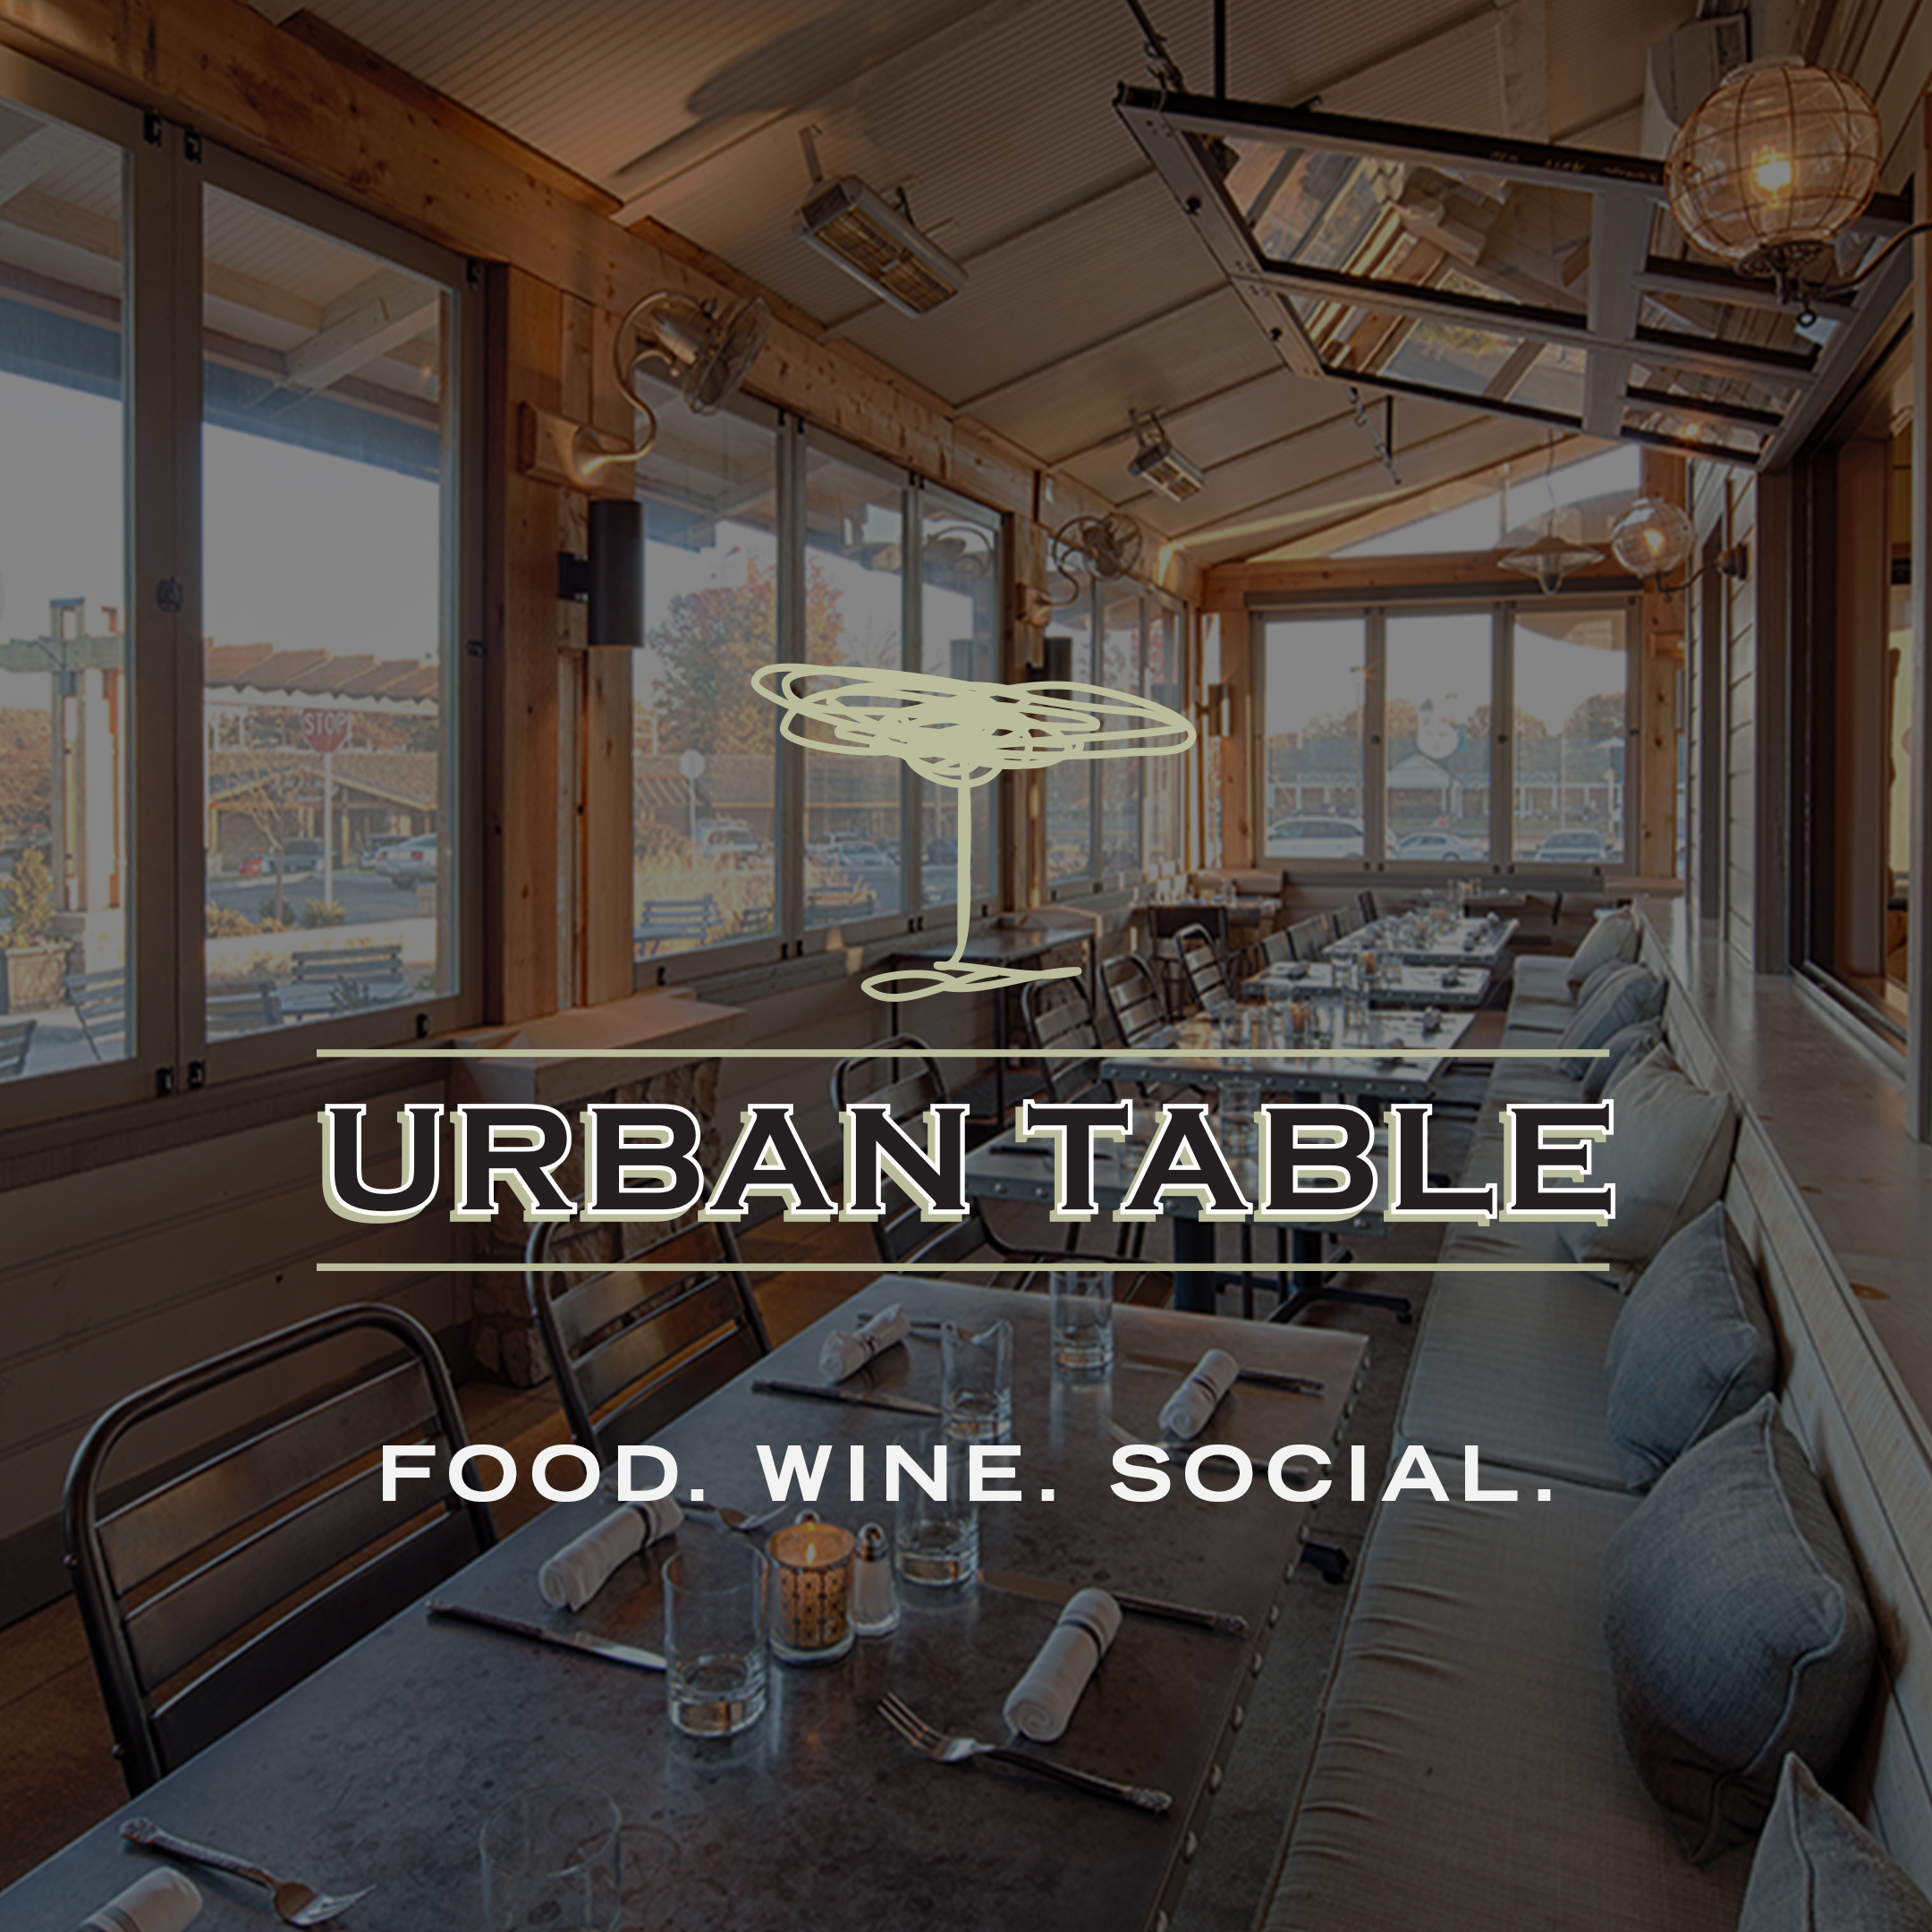 CLICK TO MAKE RESERVATIONS  AT URBAN TABLE